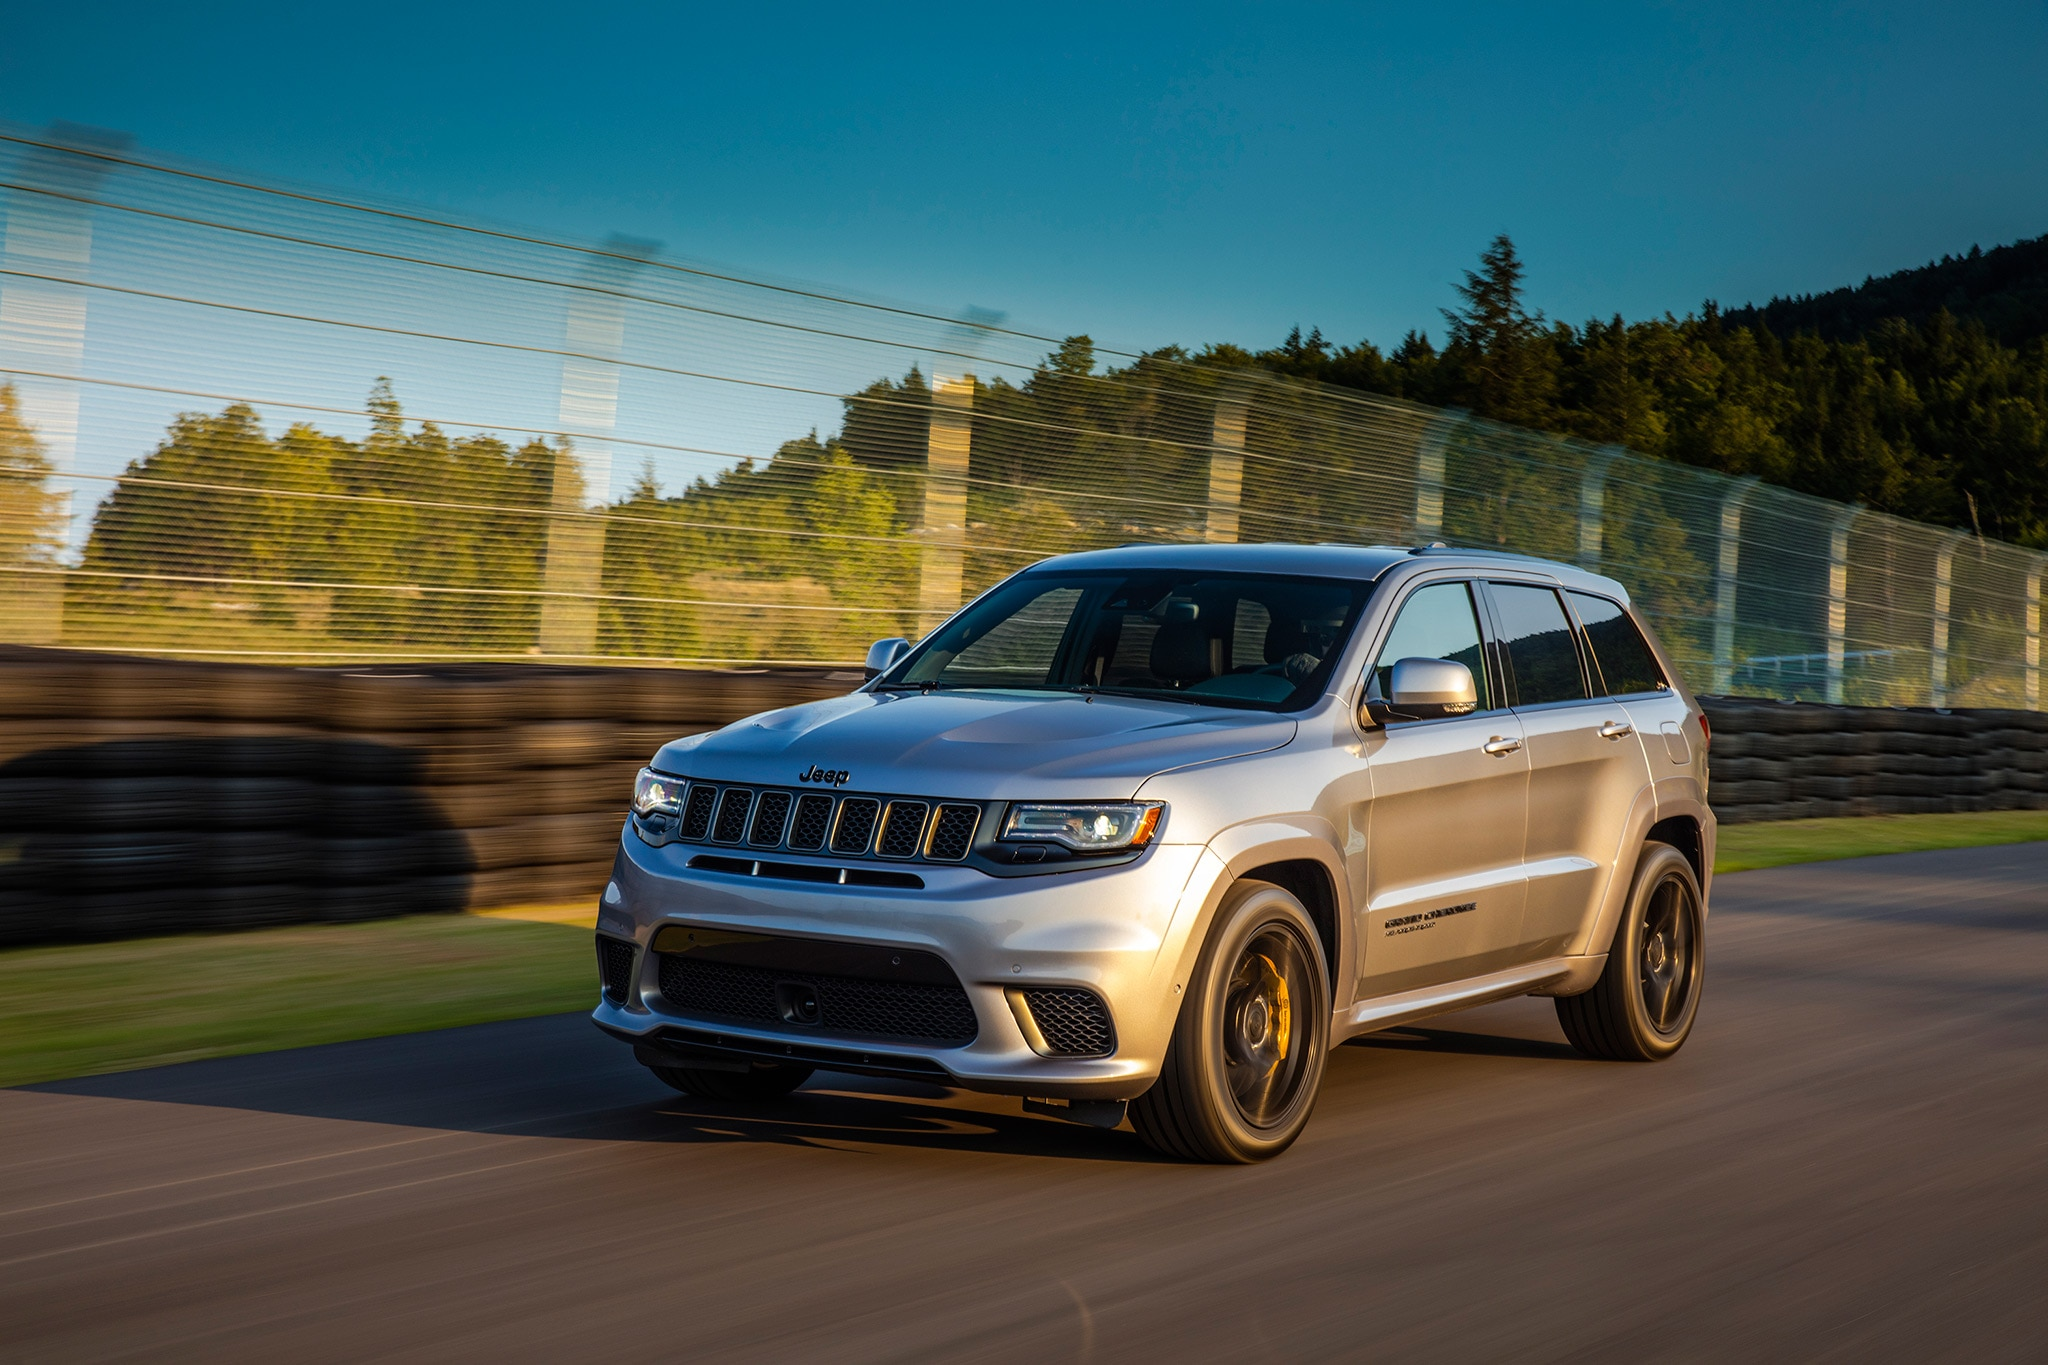 2018 jeep grand cherokee trackhawk first drive review automobile magazine. Black Bedroom Furniture Sets. Home Design Ideas